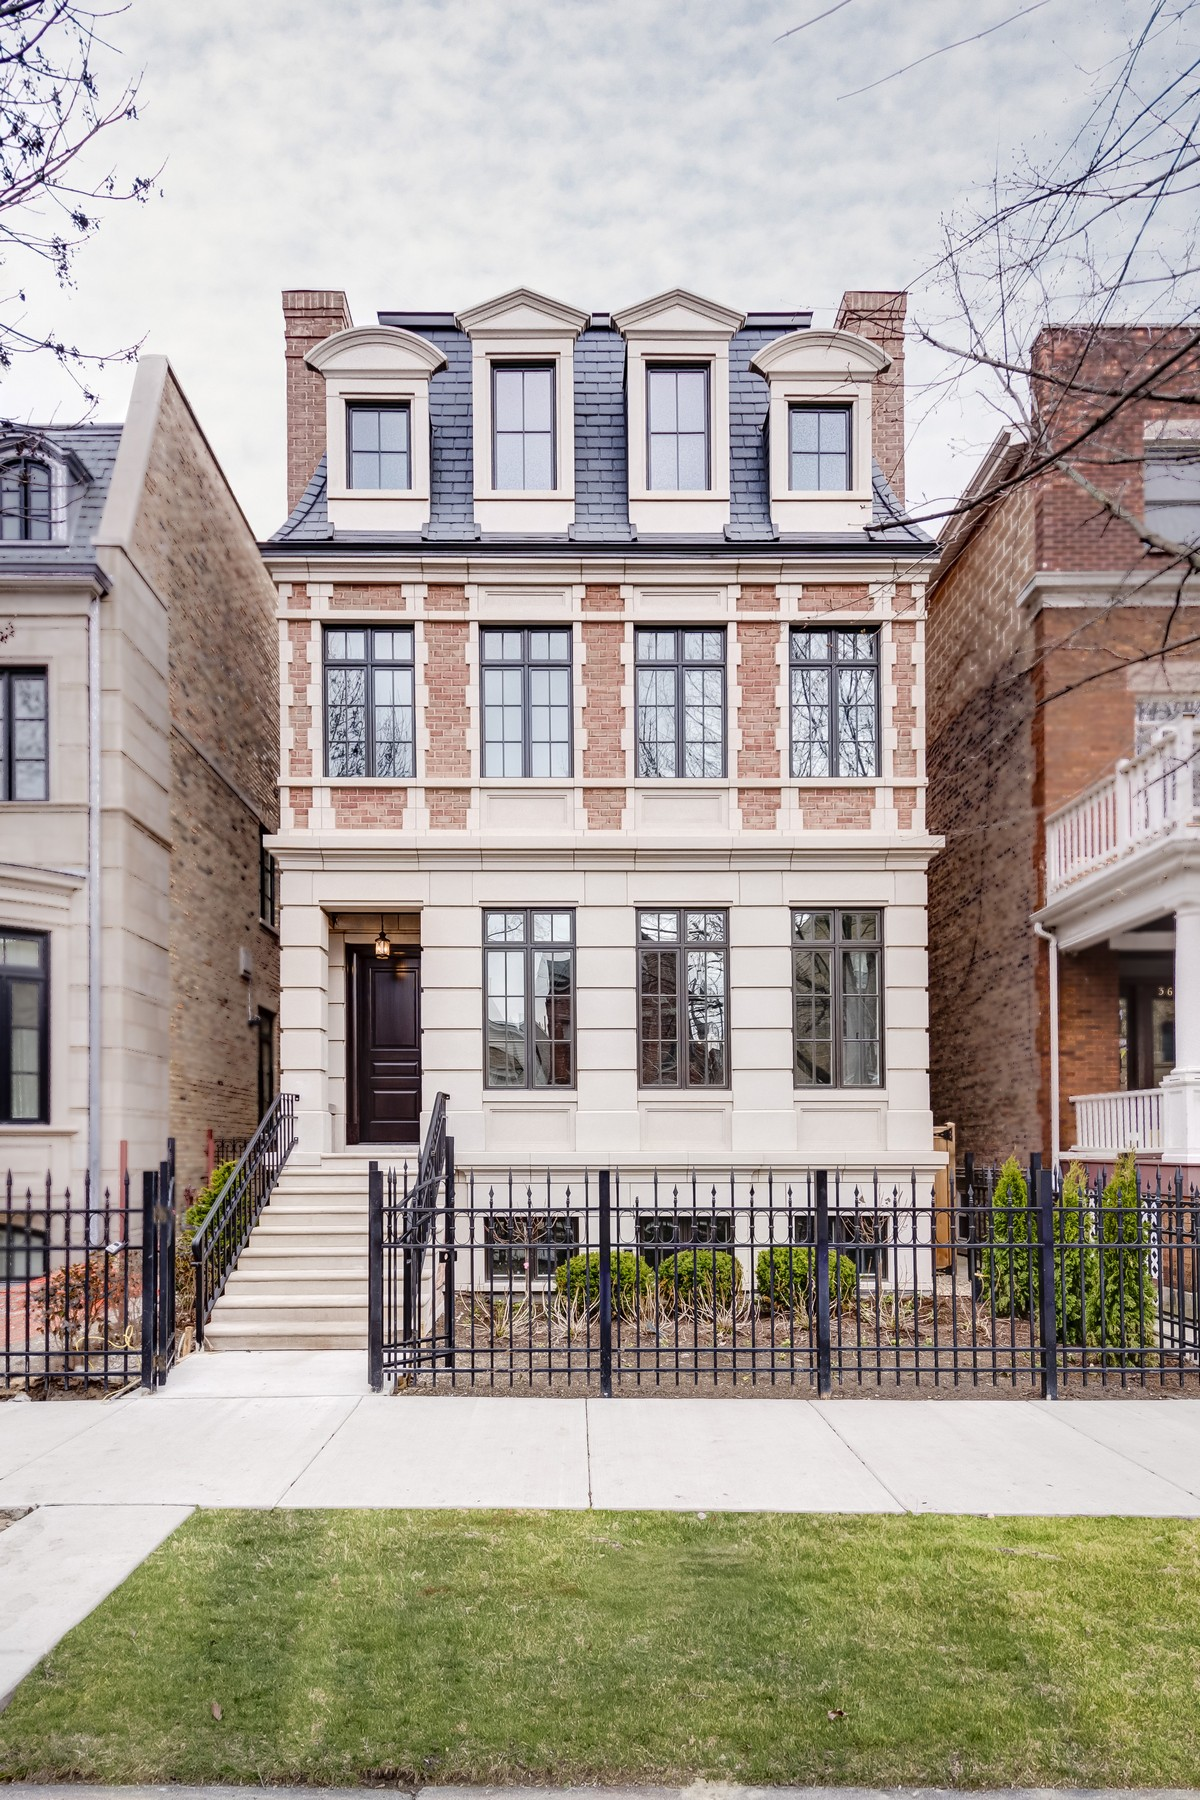 Single Family Home for Sale at A New Bloomfield Development 3643 N Lakewood Avenue Lakeview, Chicago, Illinois, 60613 United States